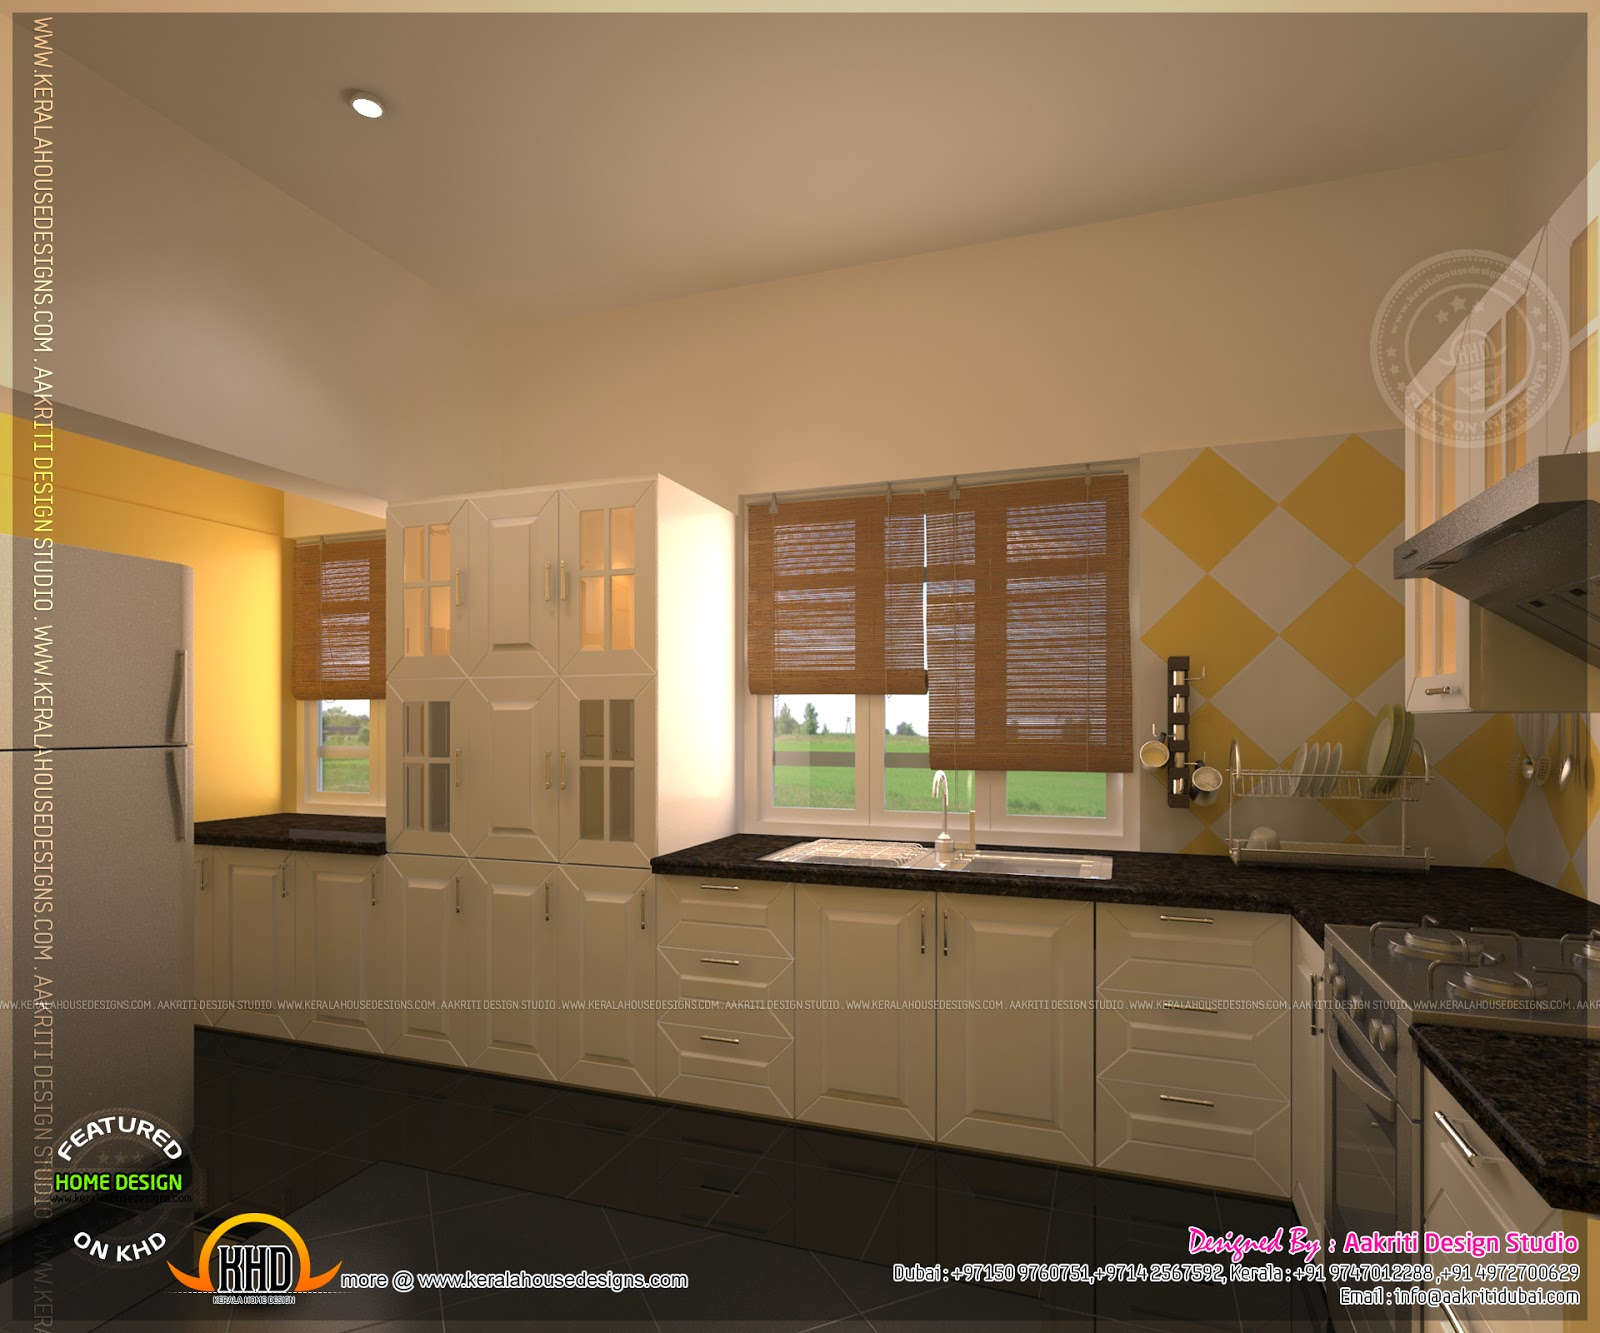 Top Kitchen Design Studio 1600 x 1333 · 269 kB · jpeg